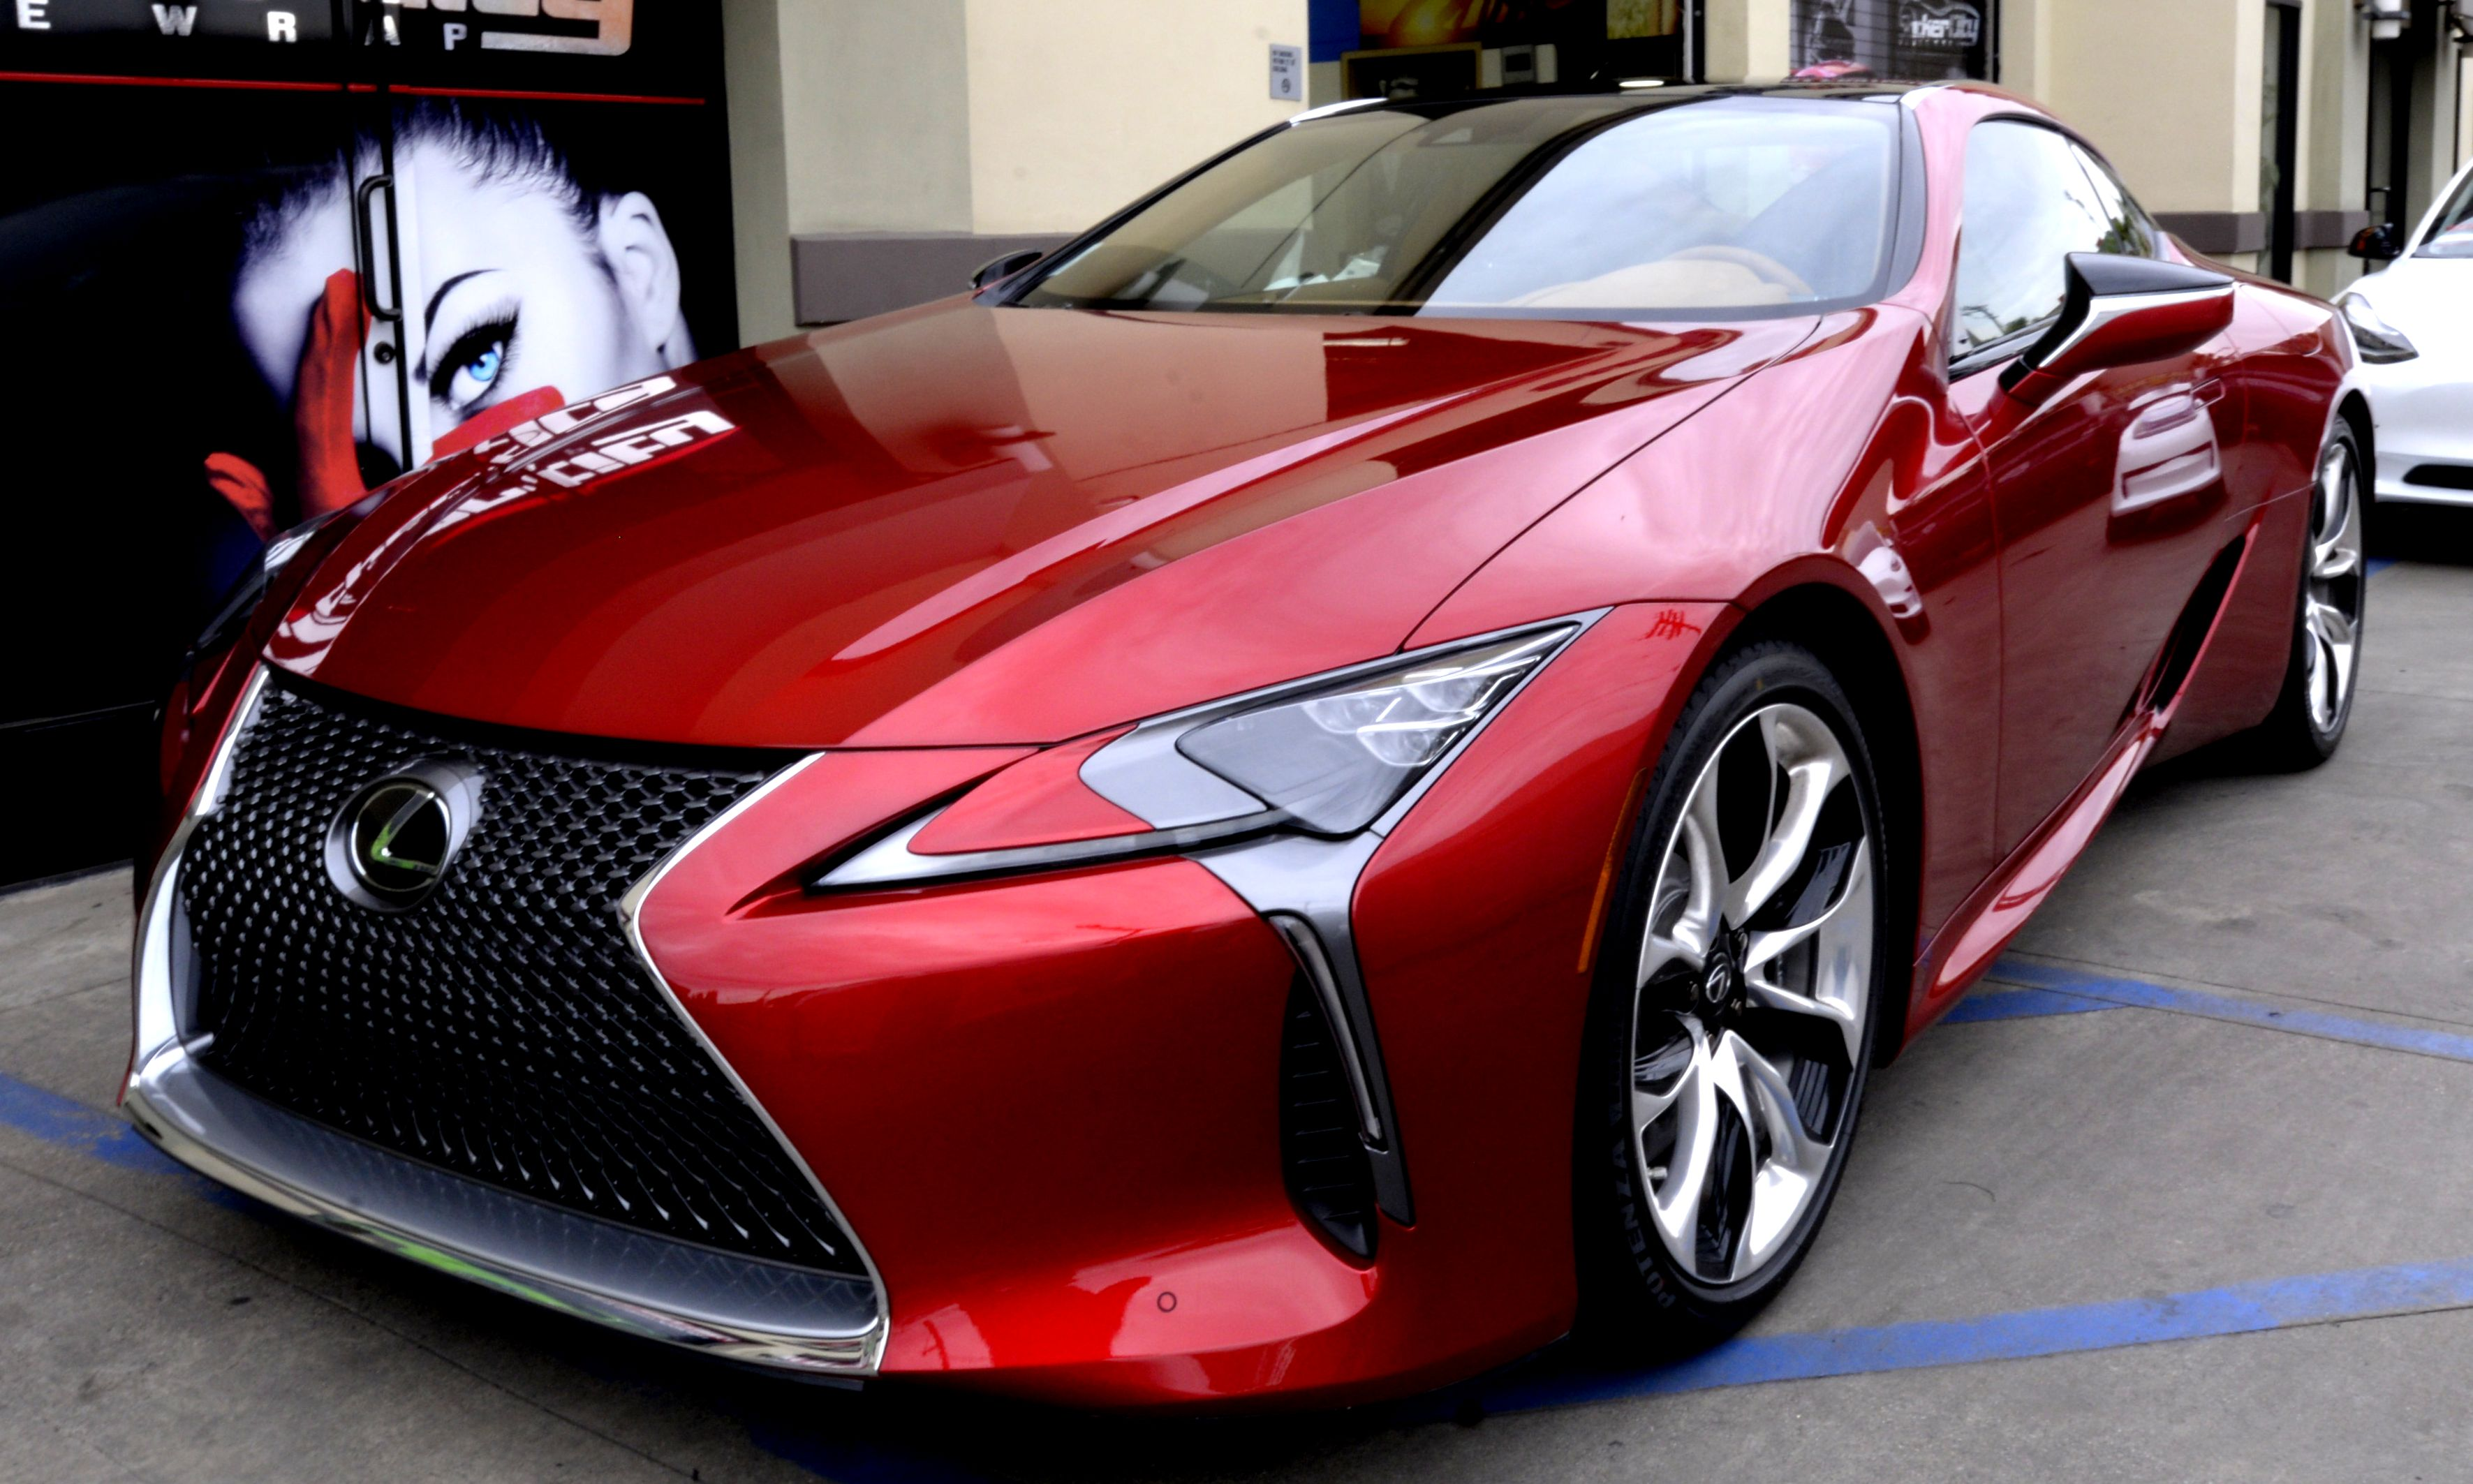 Xpel paint protection on Lexus LC 500